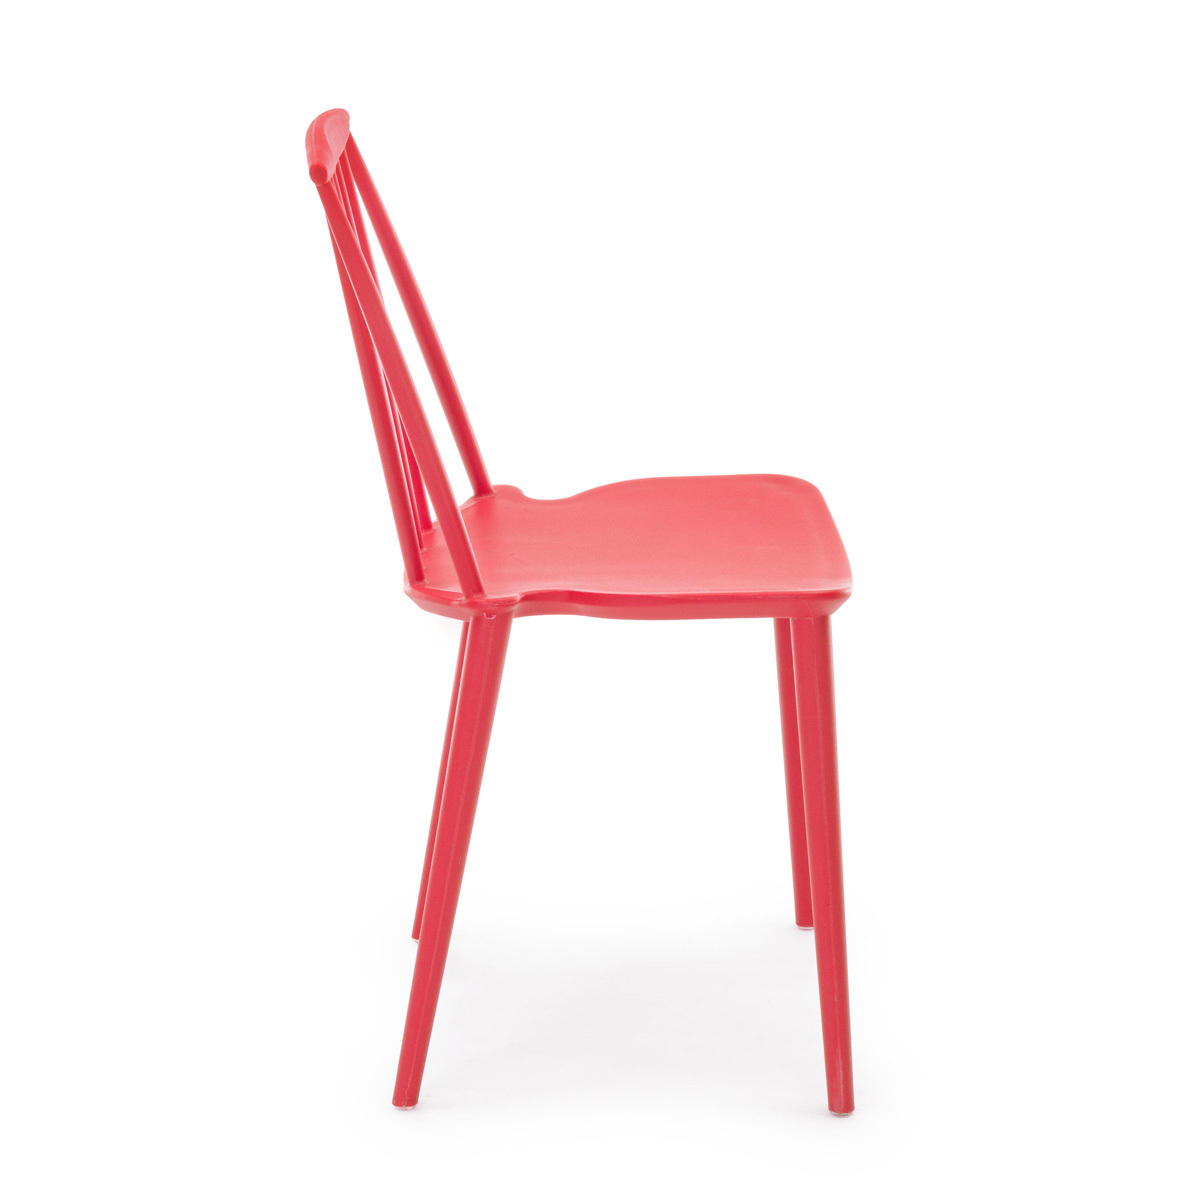 Photos 2: Bizzotto Chair in polypropylene - red 0731690